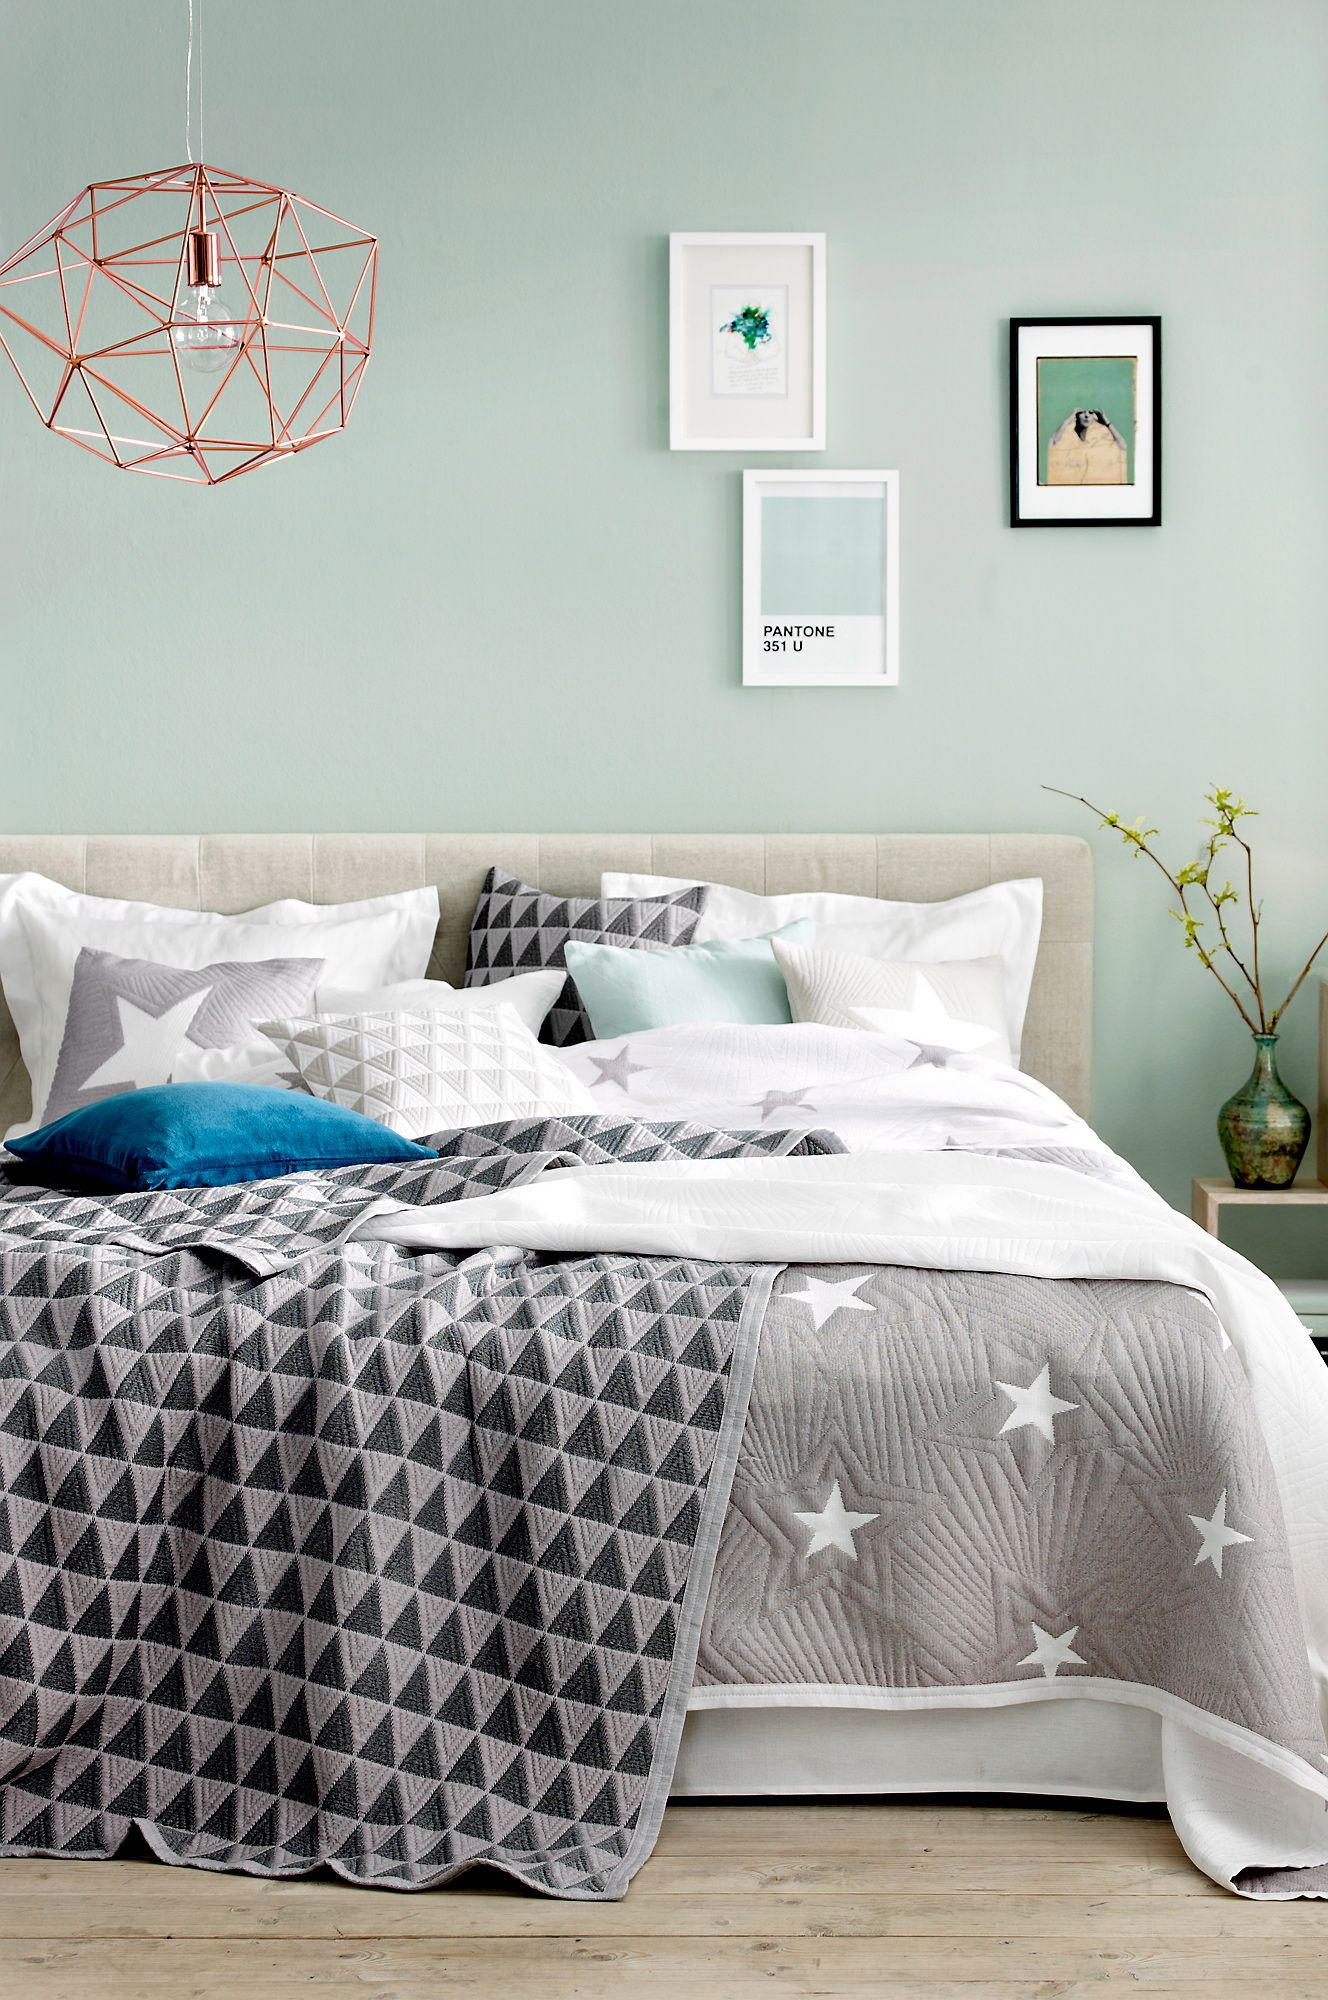 10 Stylish Green And Blue Room Ideas mint watery blue green walls grey accents comfy bedi like the